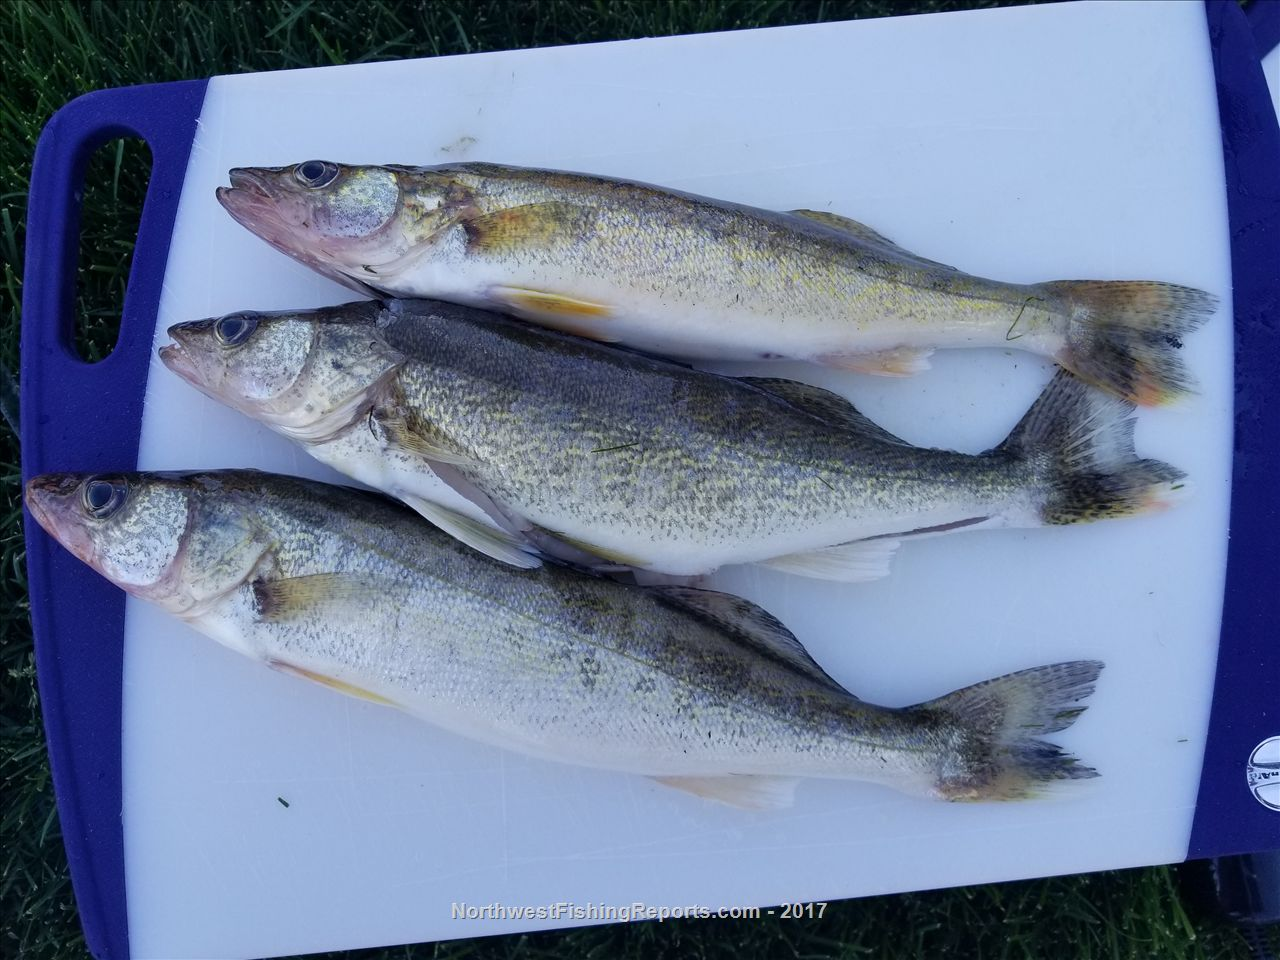 Scootney fishing report northwest fishing reports for Wdfw fishing emergency rules